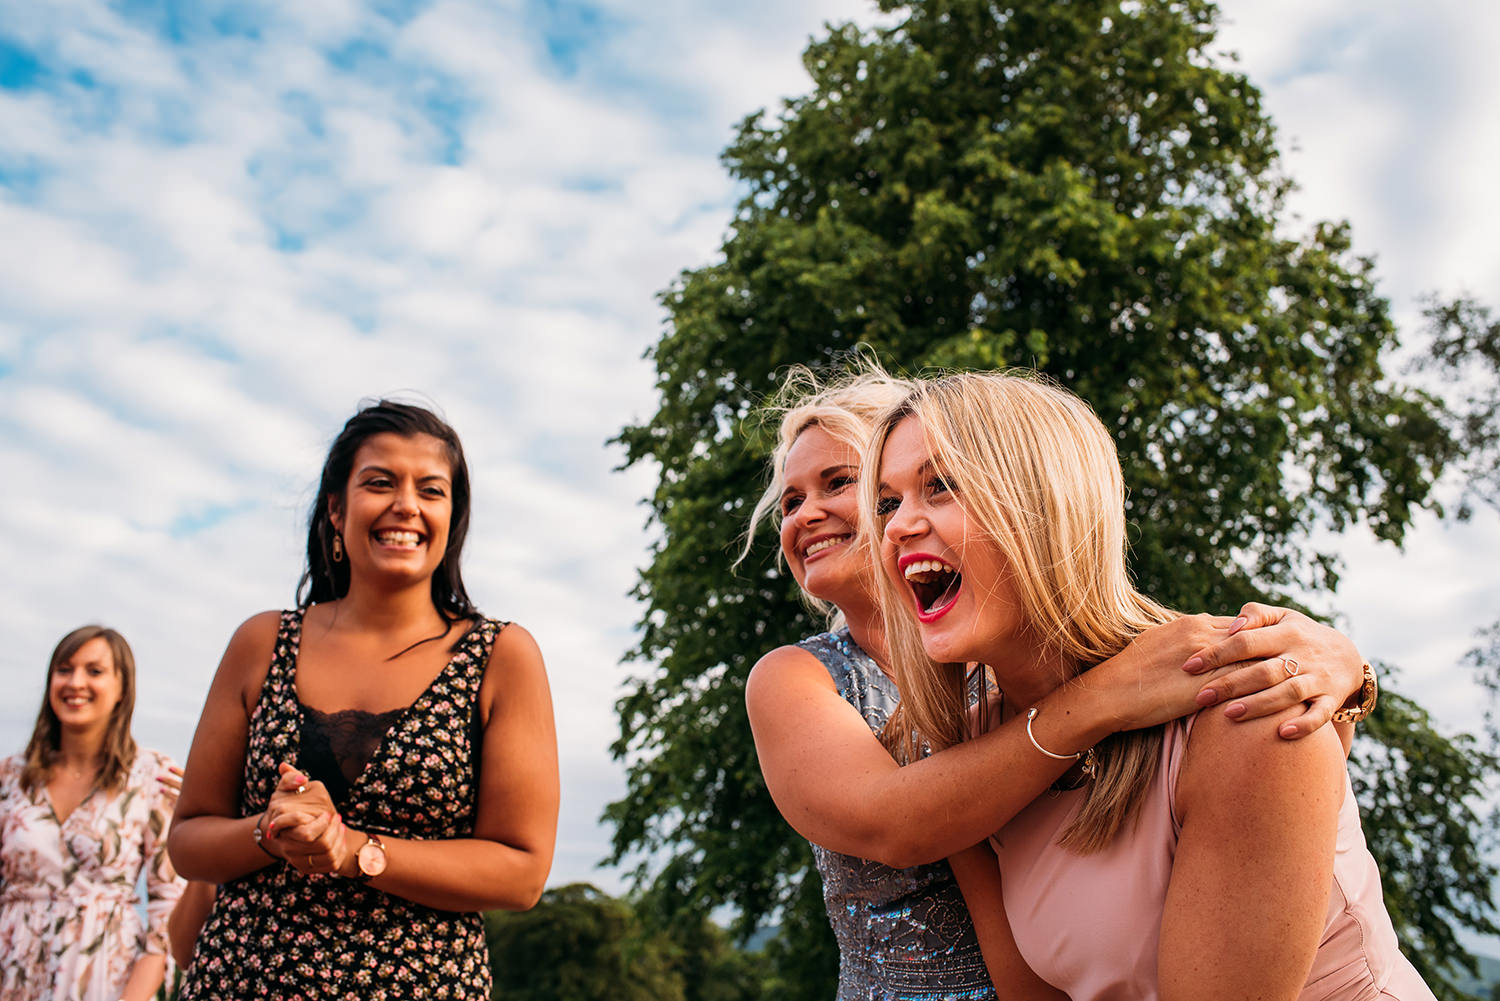 colour photo girls laughing